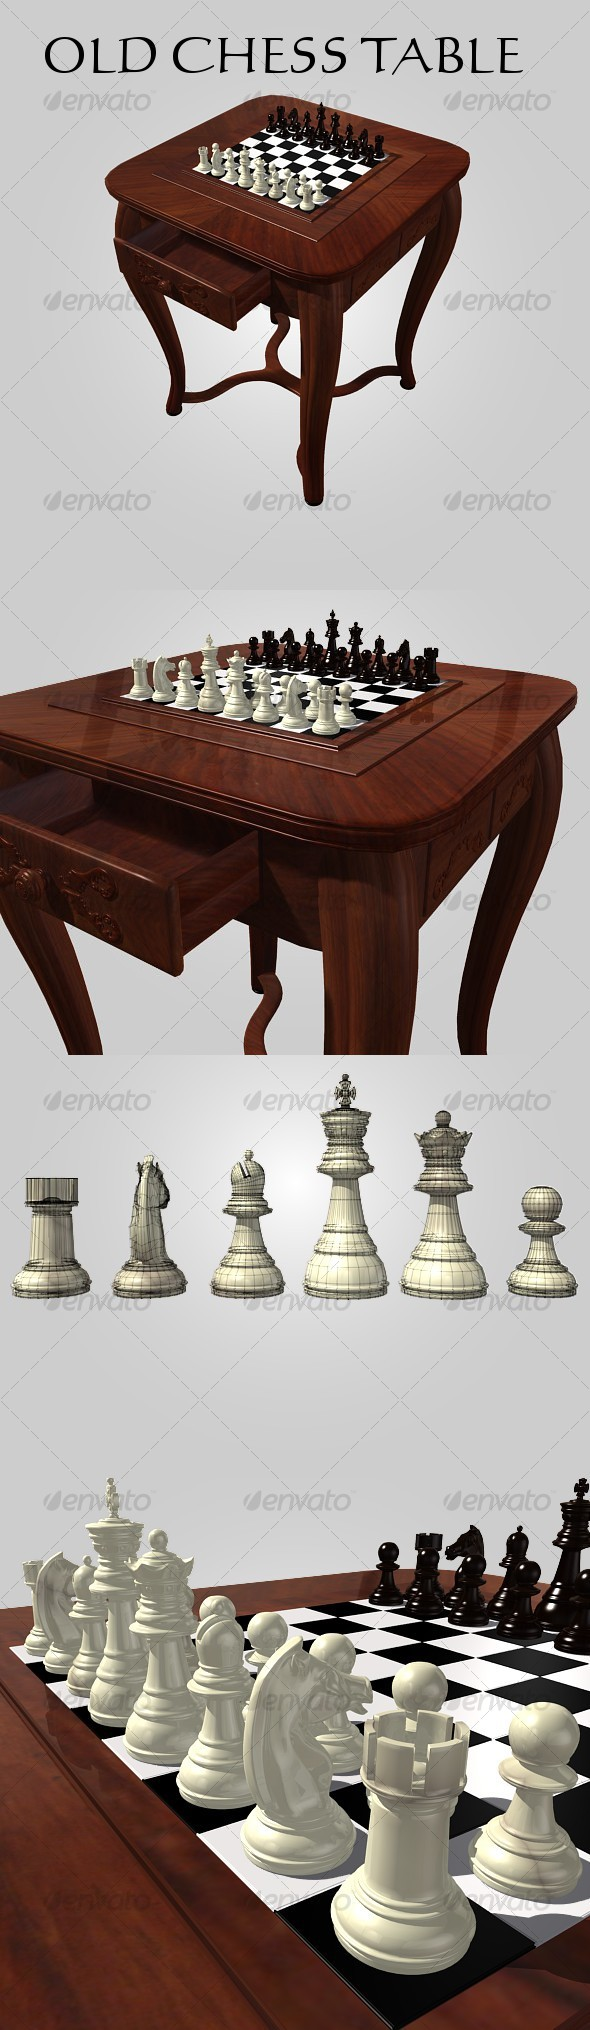 Old Chess Table - 3DOcean Item for Sale